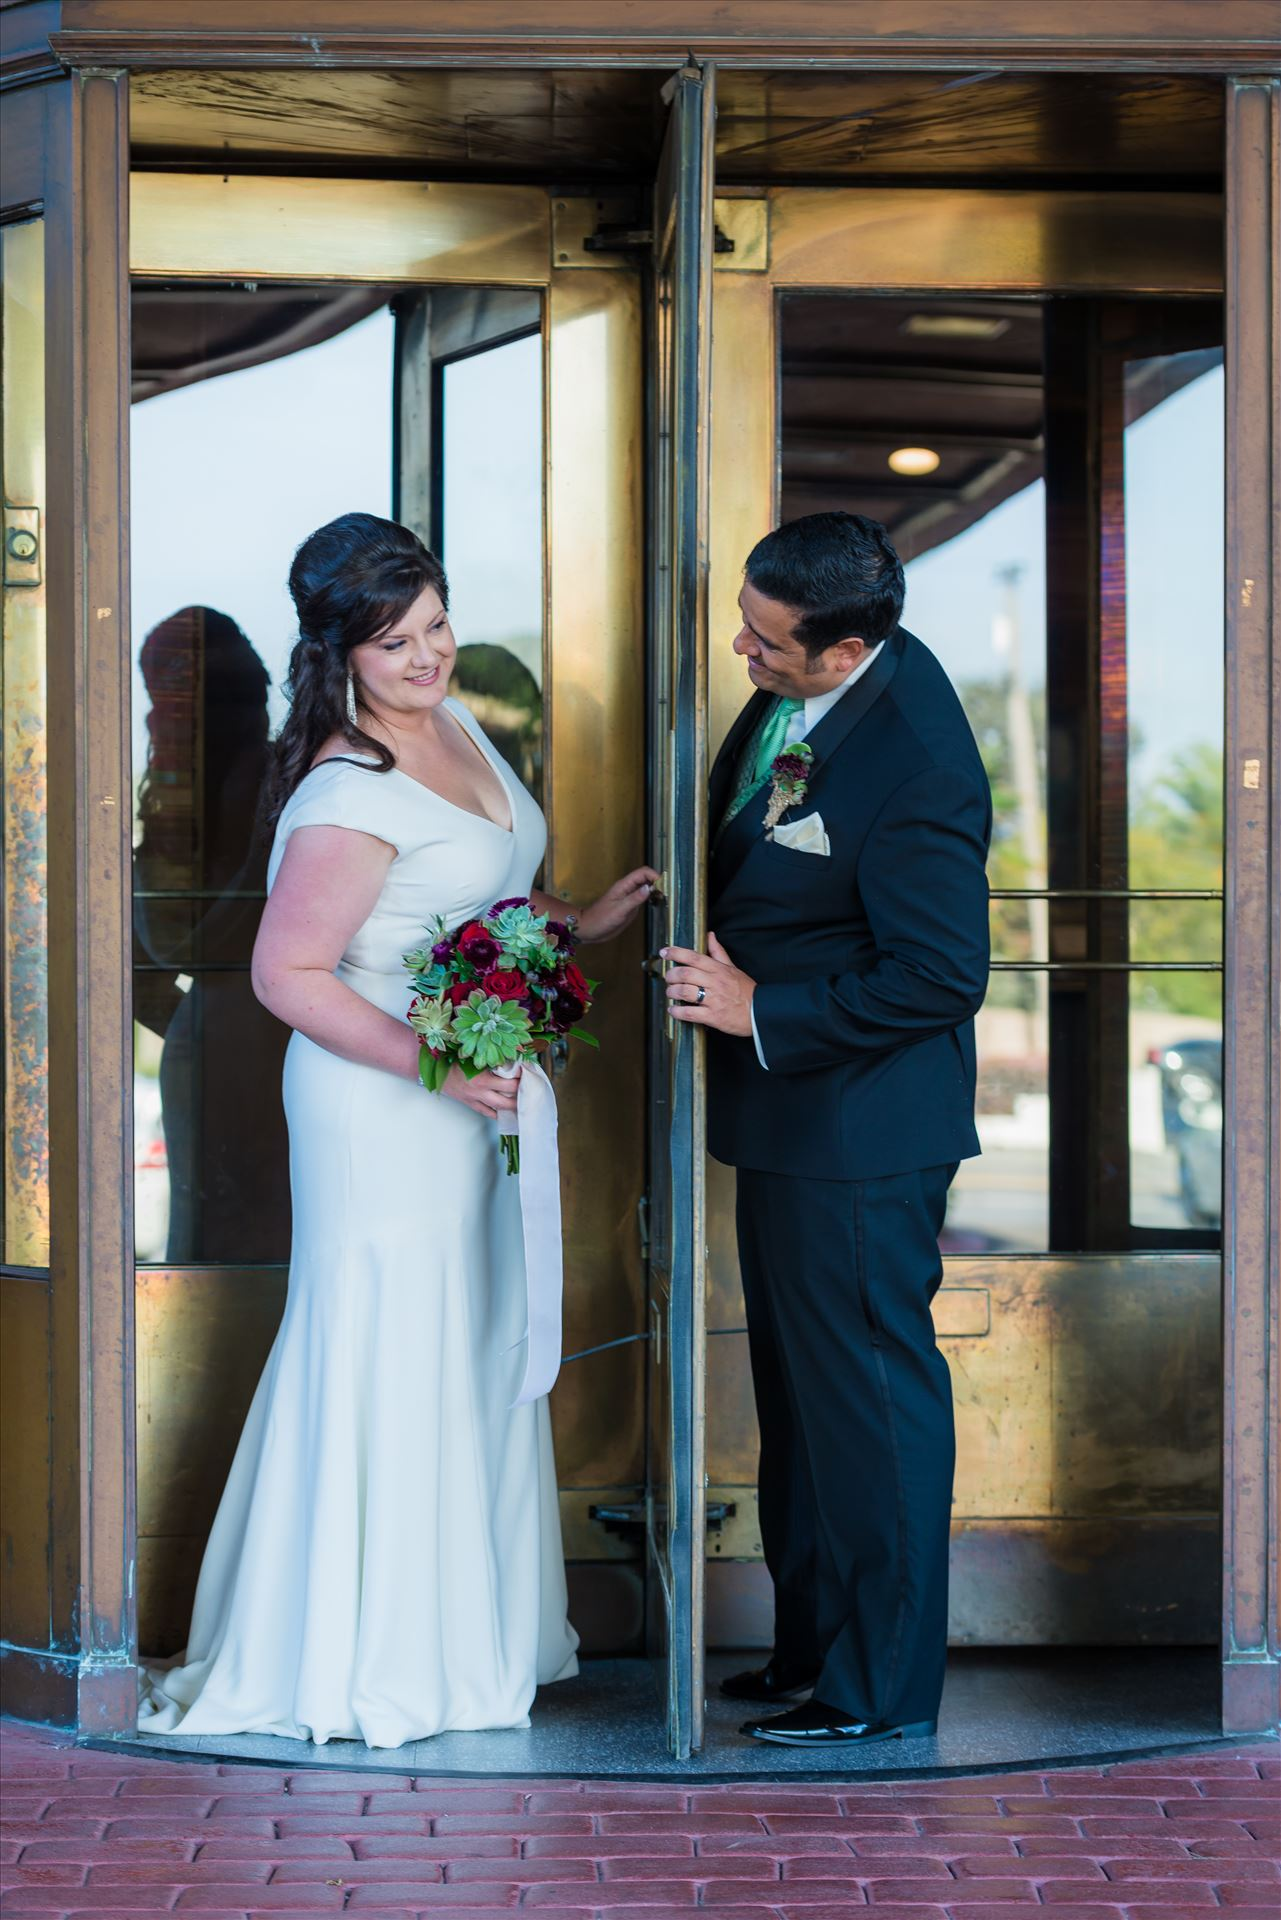 Mary and Alejandro 13 - Wedding photography at the Historic Santa Maria Inn in Santa Maria, California by Mirror's Edge Photography. Bride and Groom revolving door entrance. by Sarah Williams